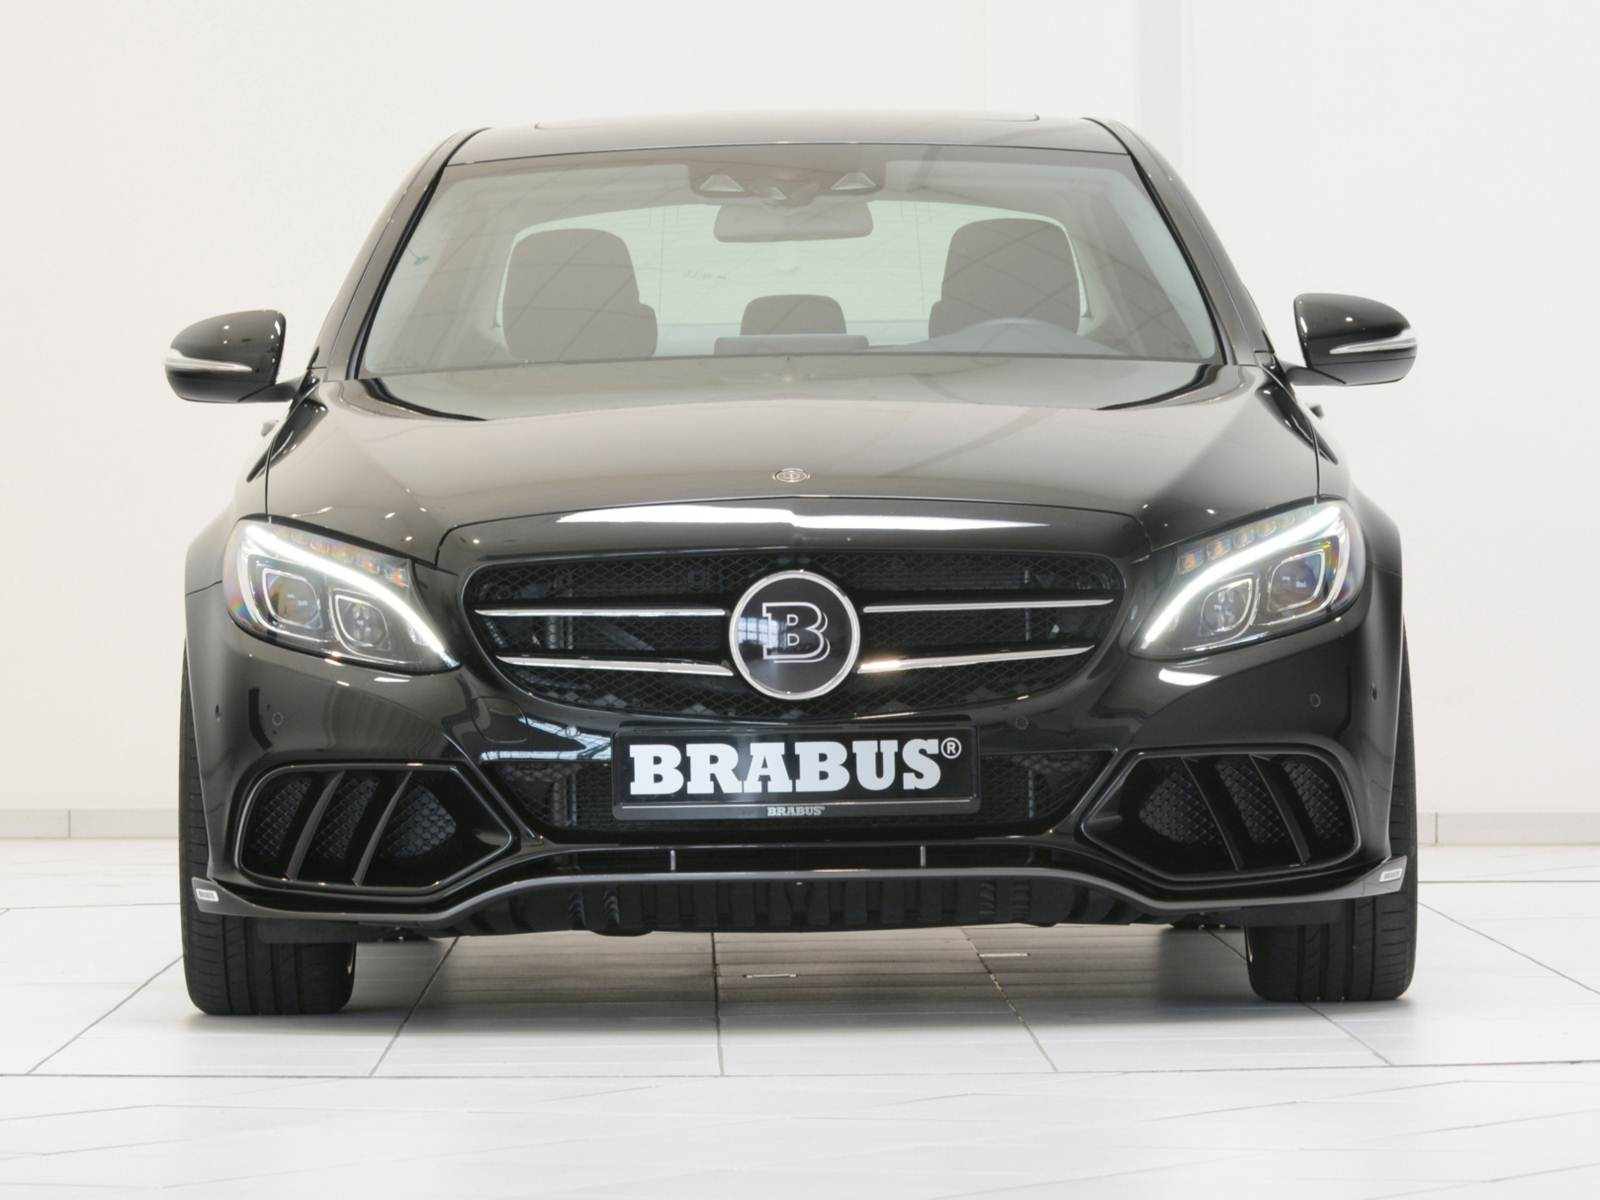 mercedes benz classe c200 brabus novo modelo com visual esportivo carro bonito. Black Bedroom Furniture Sets. Home Design Ideas